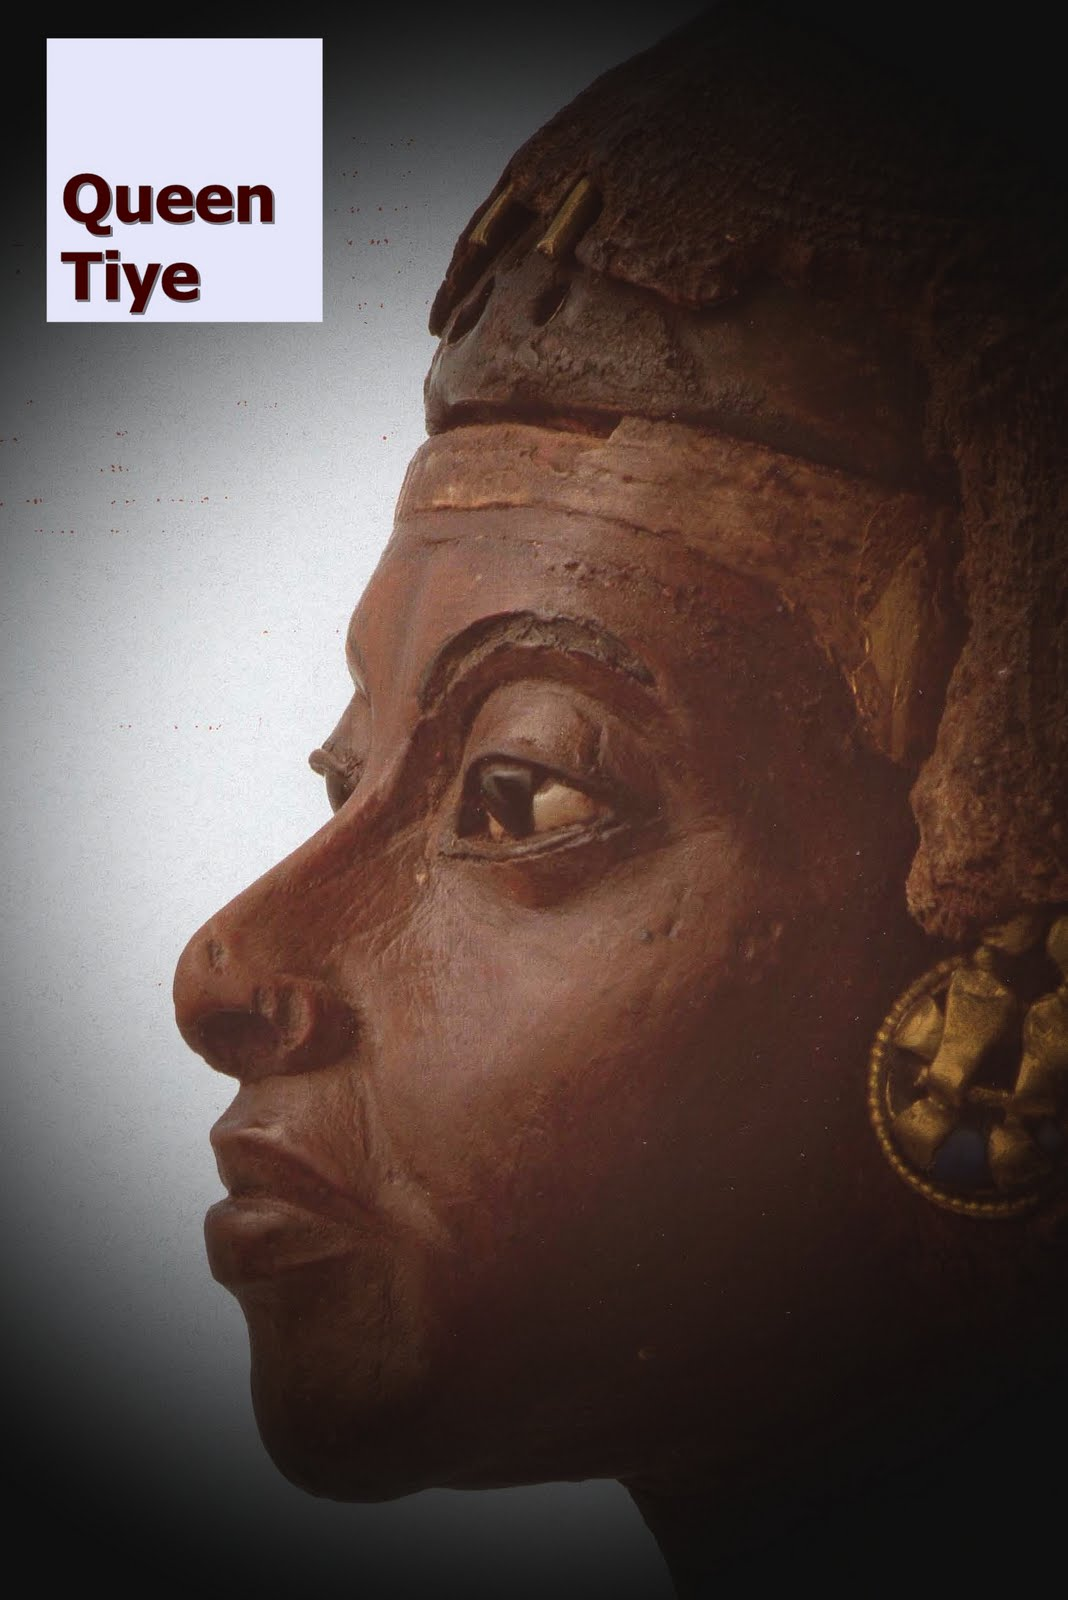 Black History Heroes Queen Tiye Of The Land Of Kmt Revisiting